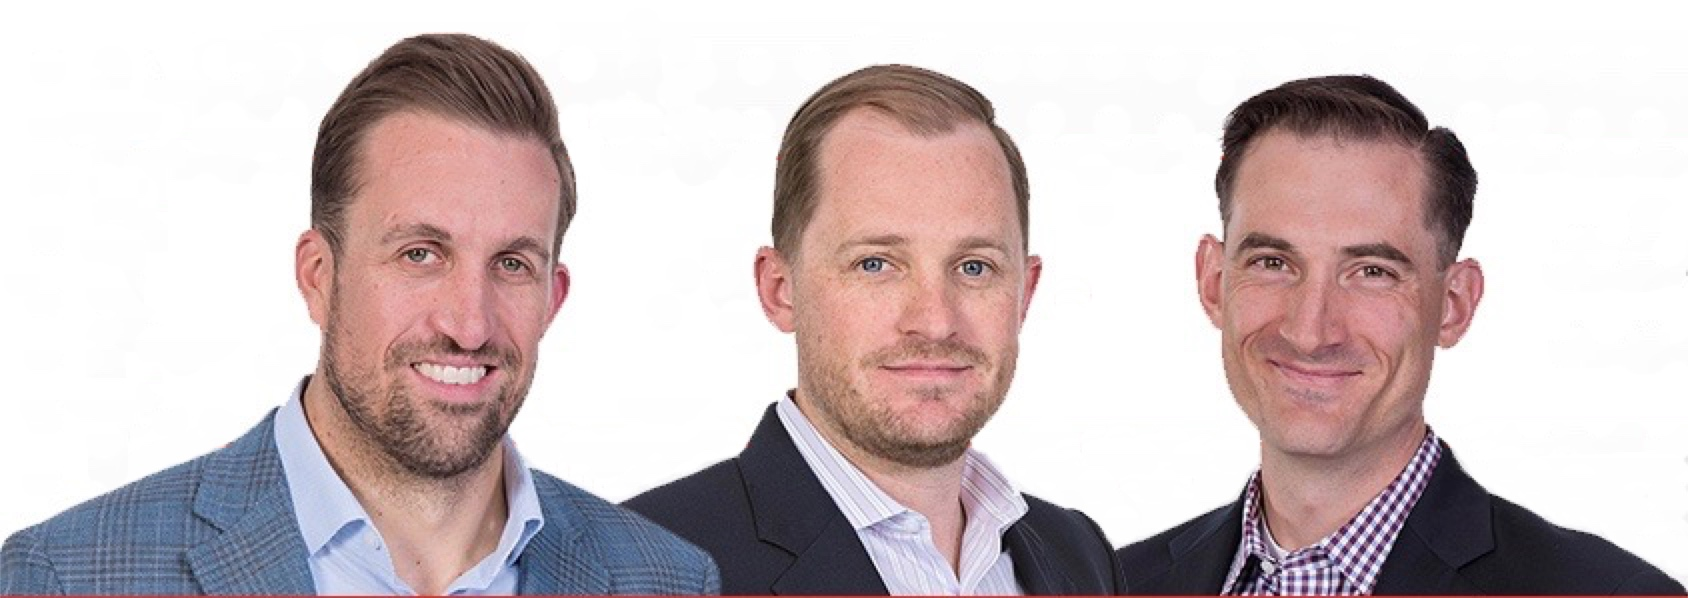 Jonathan Coors, Michael Coors, and Timothy Coors; CoorsTek Co-CEOs